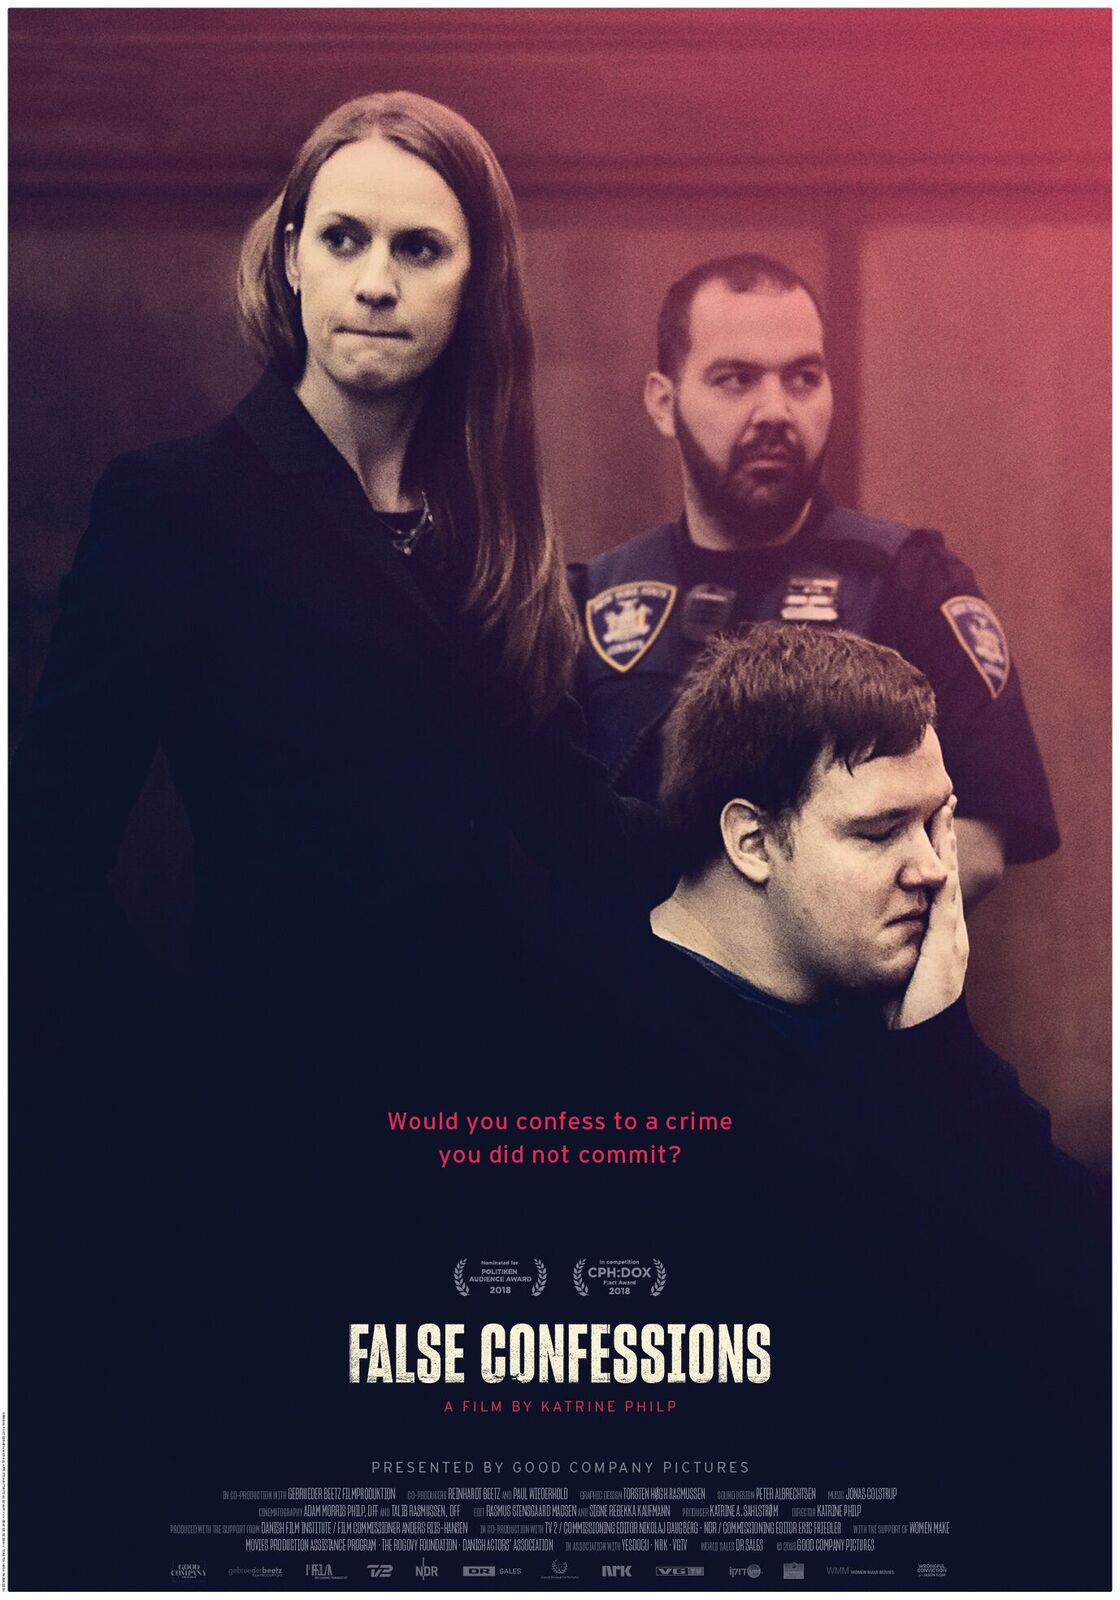 False confessions poster: exploring why innocent people confess to crime they didn't commit